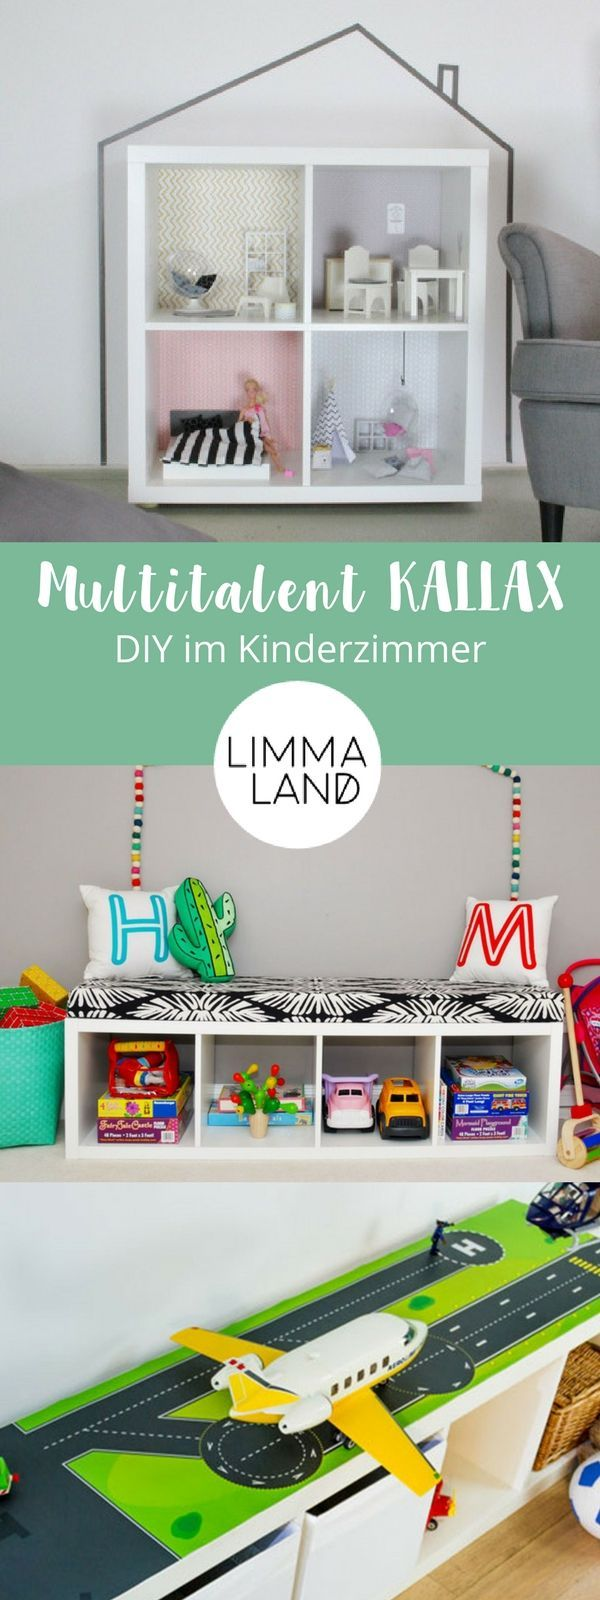 die besten 25 kinderschlafzimmer ideen auf pinterest 3. Black Bedroom Furniture Sets. Home Design Ideas